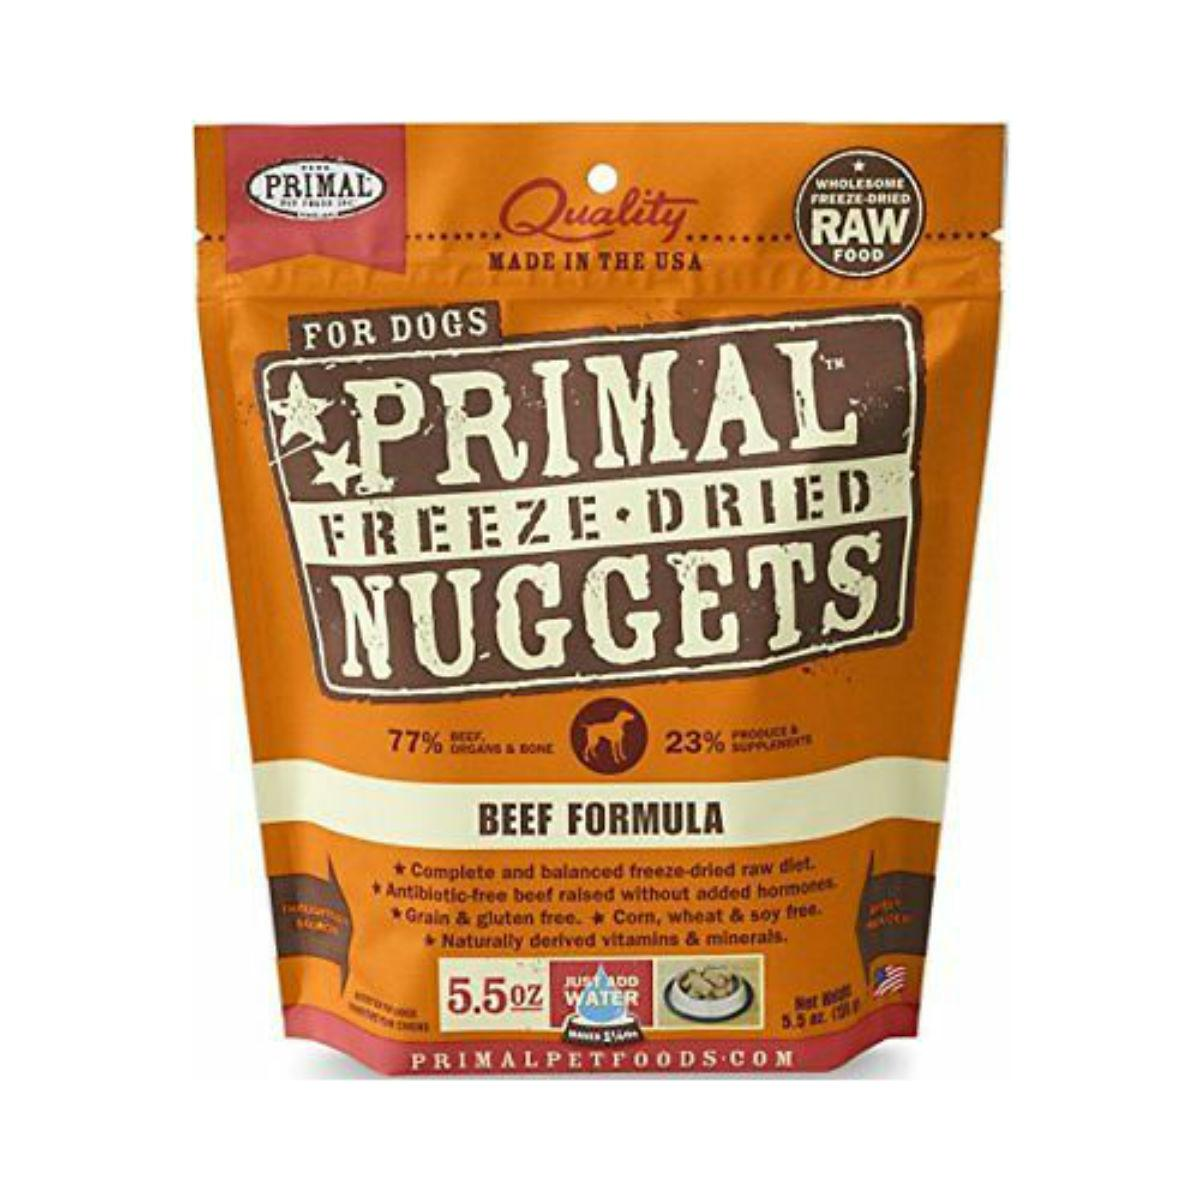 Primal Canine Freeze Dried Nuggets Dog Treat - Beef